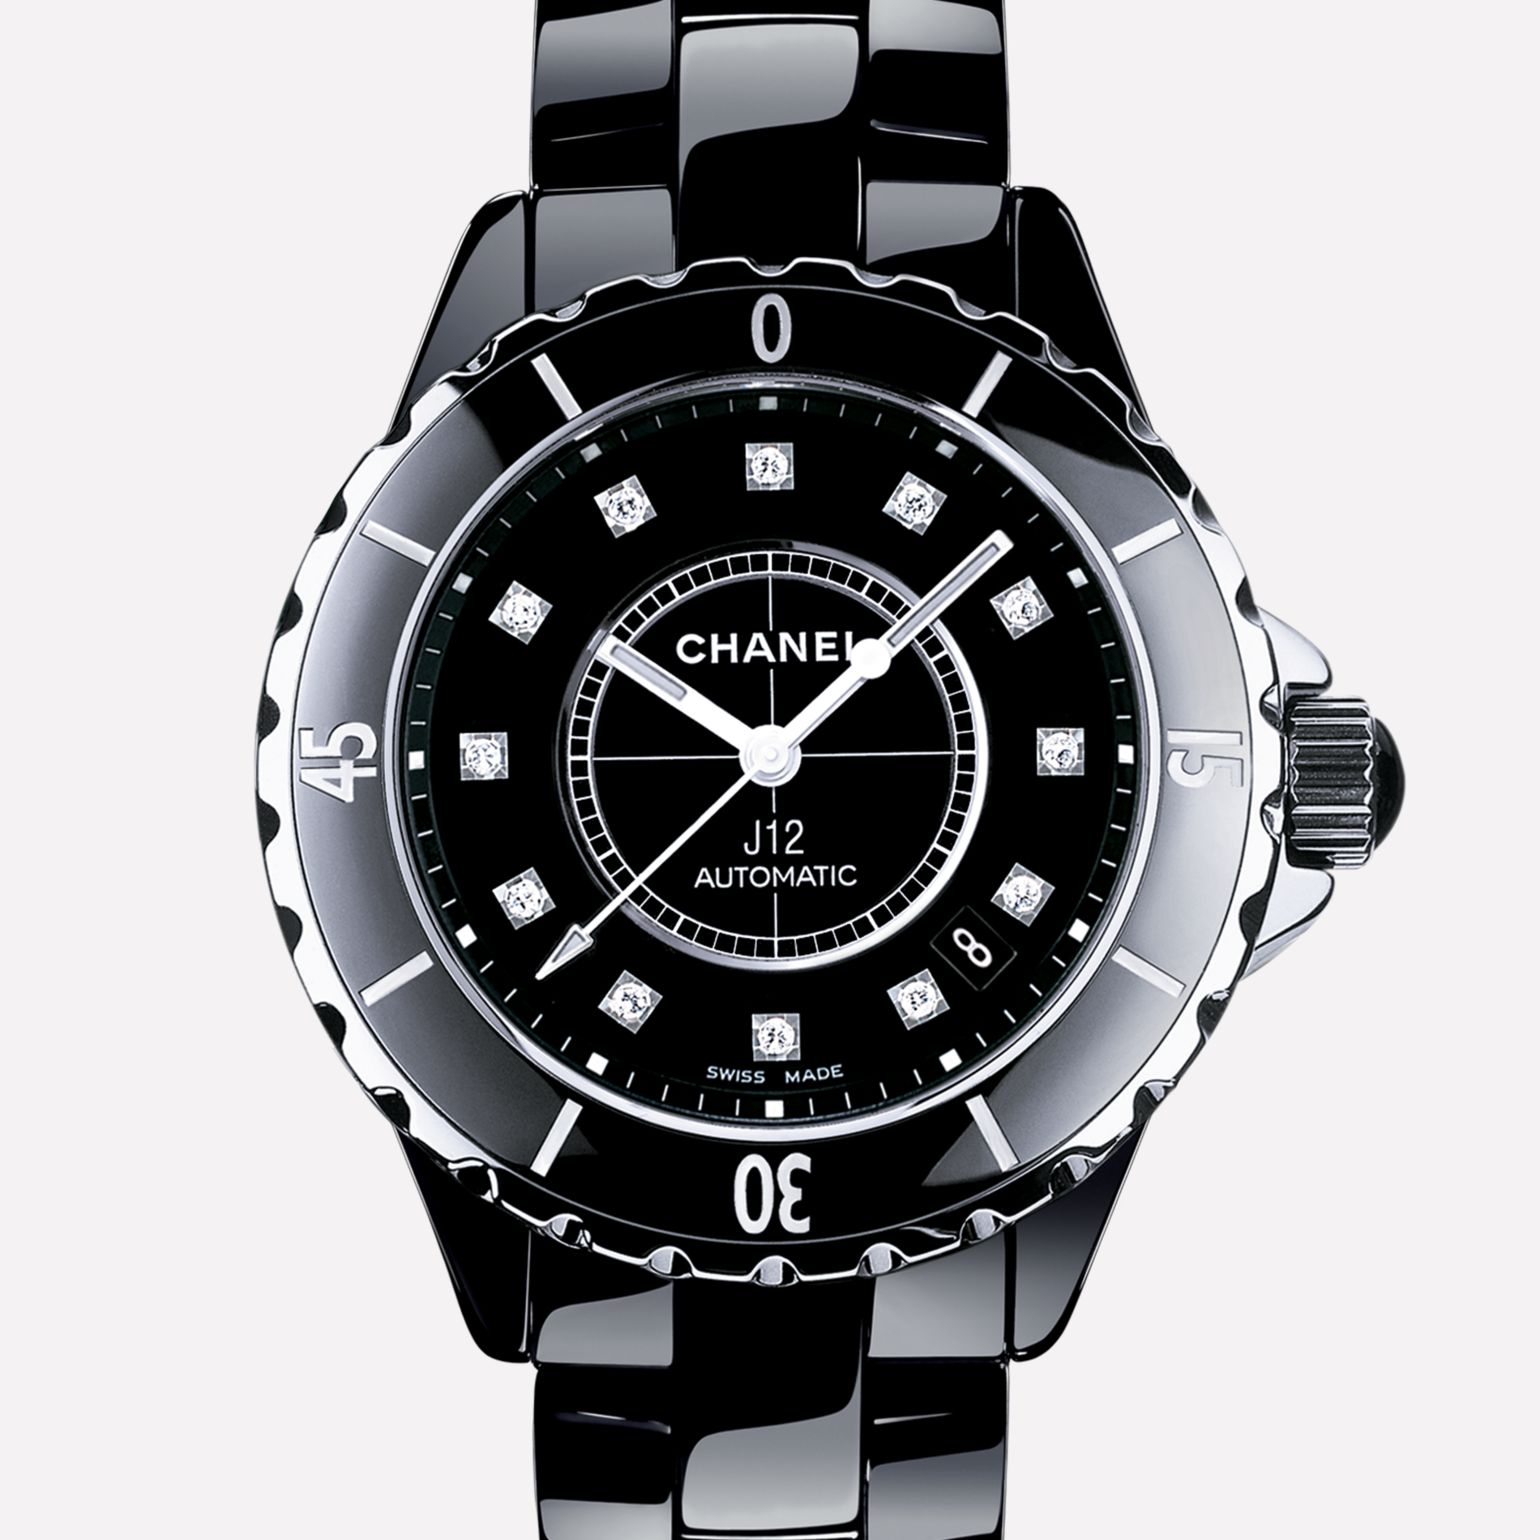 J12 Watch Black ceramic and steel, diamond indicators